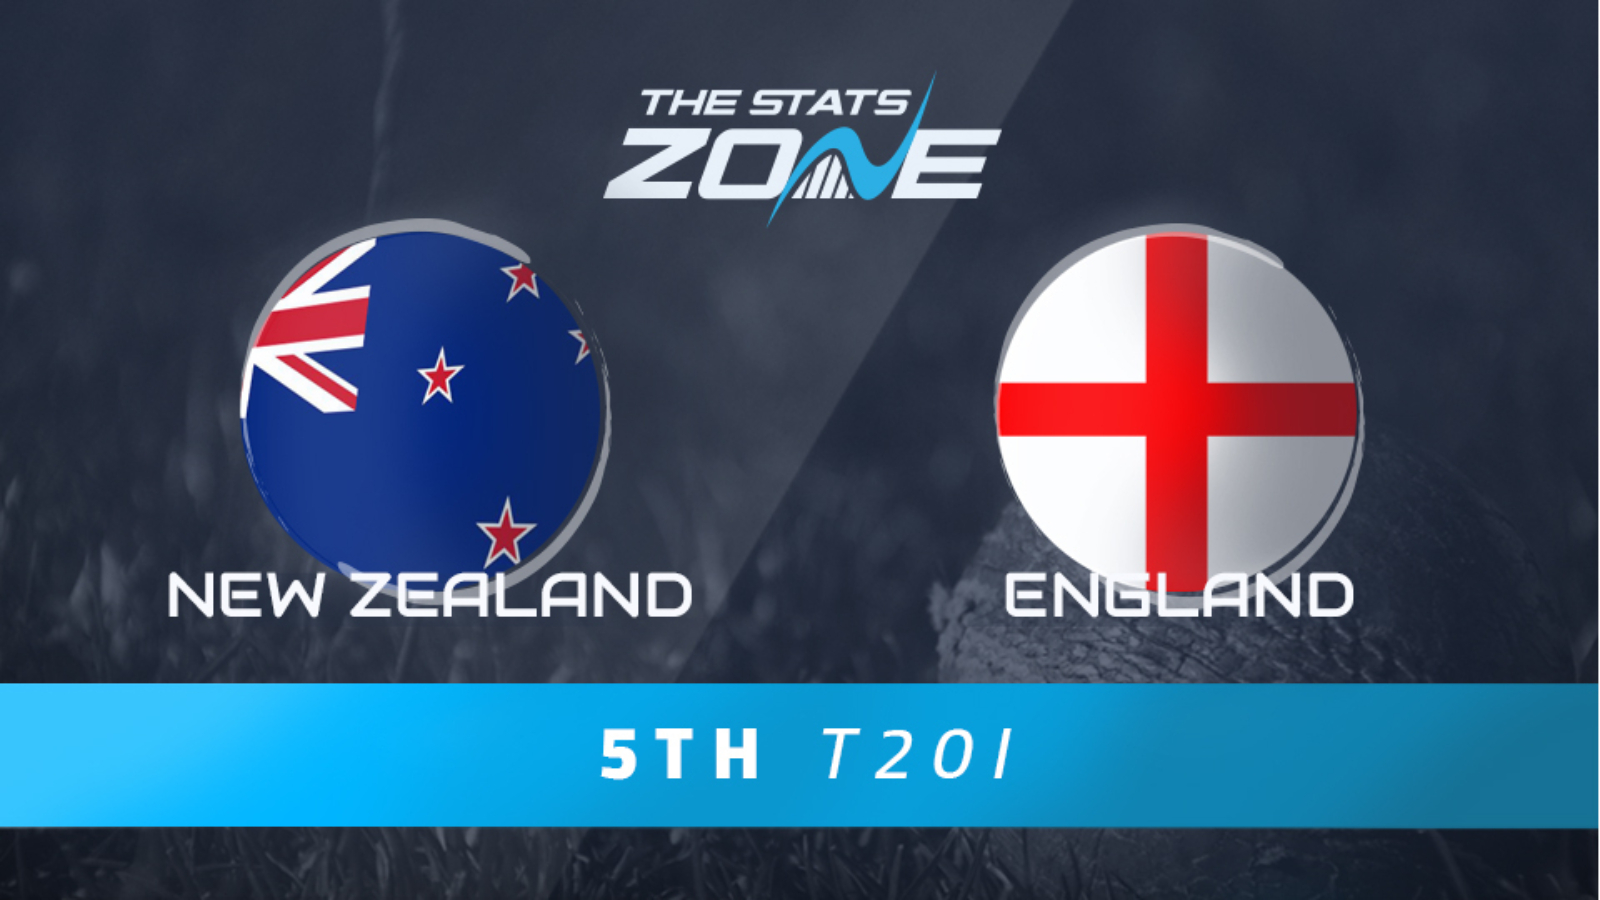 England vs New Zealand T20 player ratings